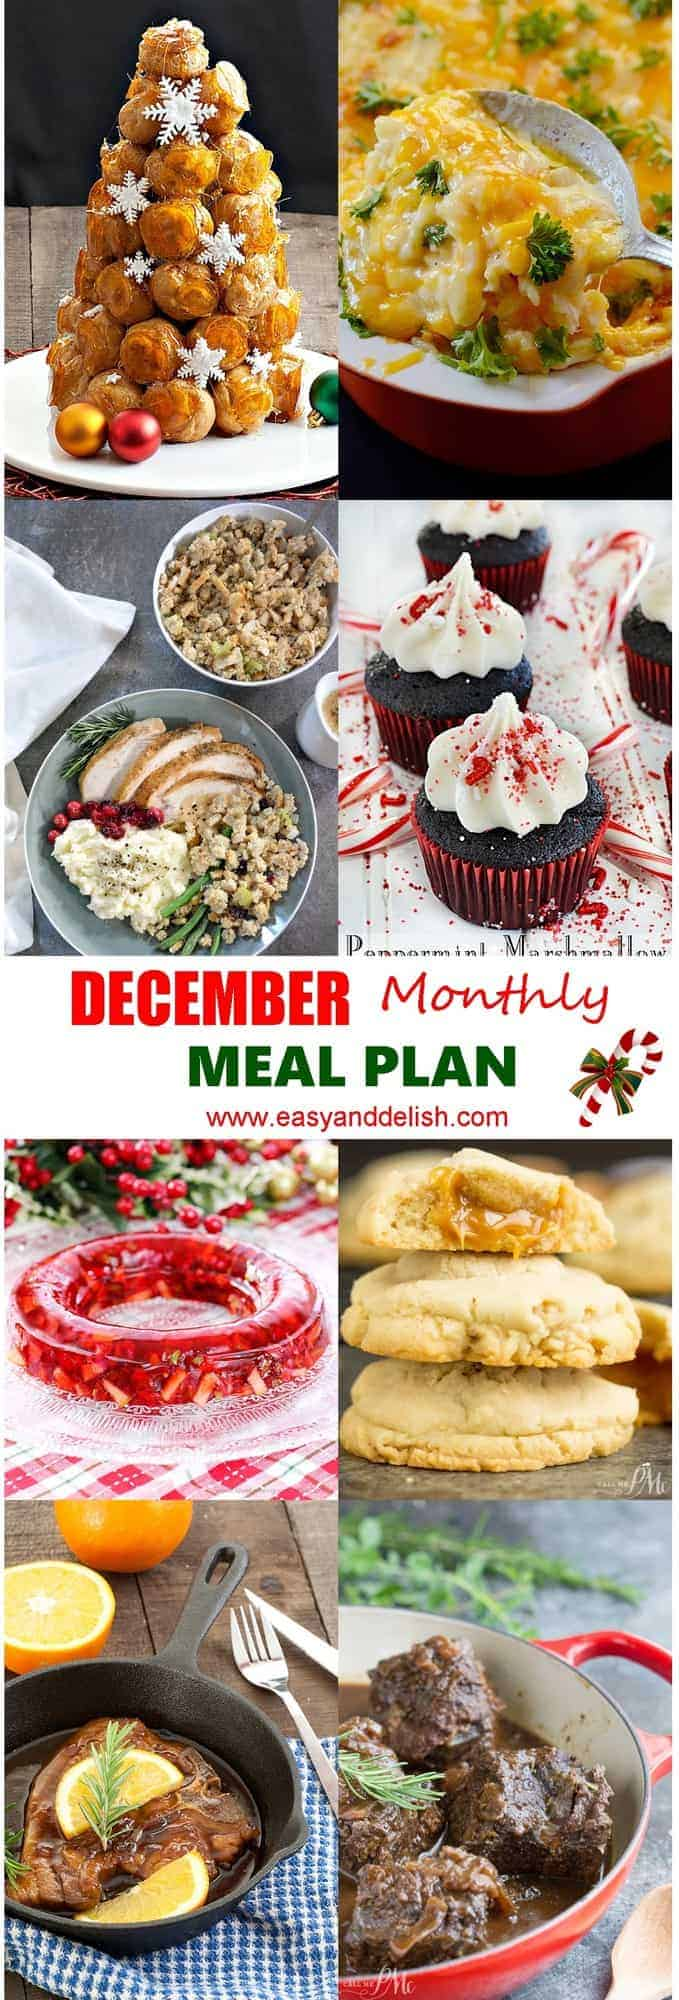 Image showing 8 dishes from December monthly meal plan